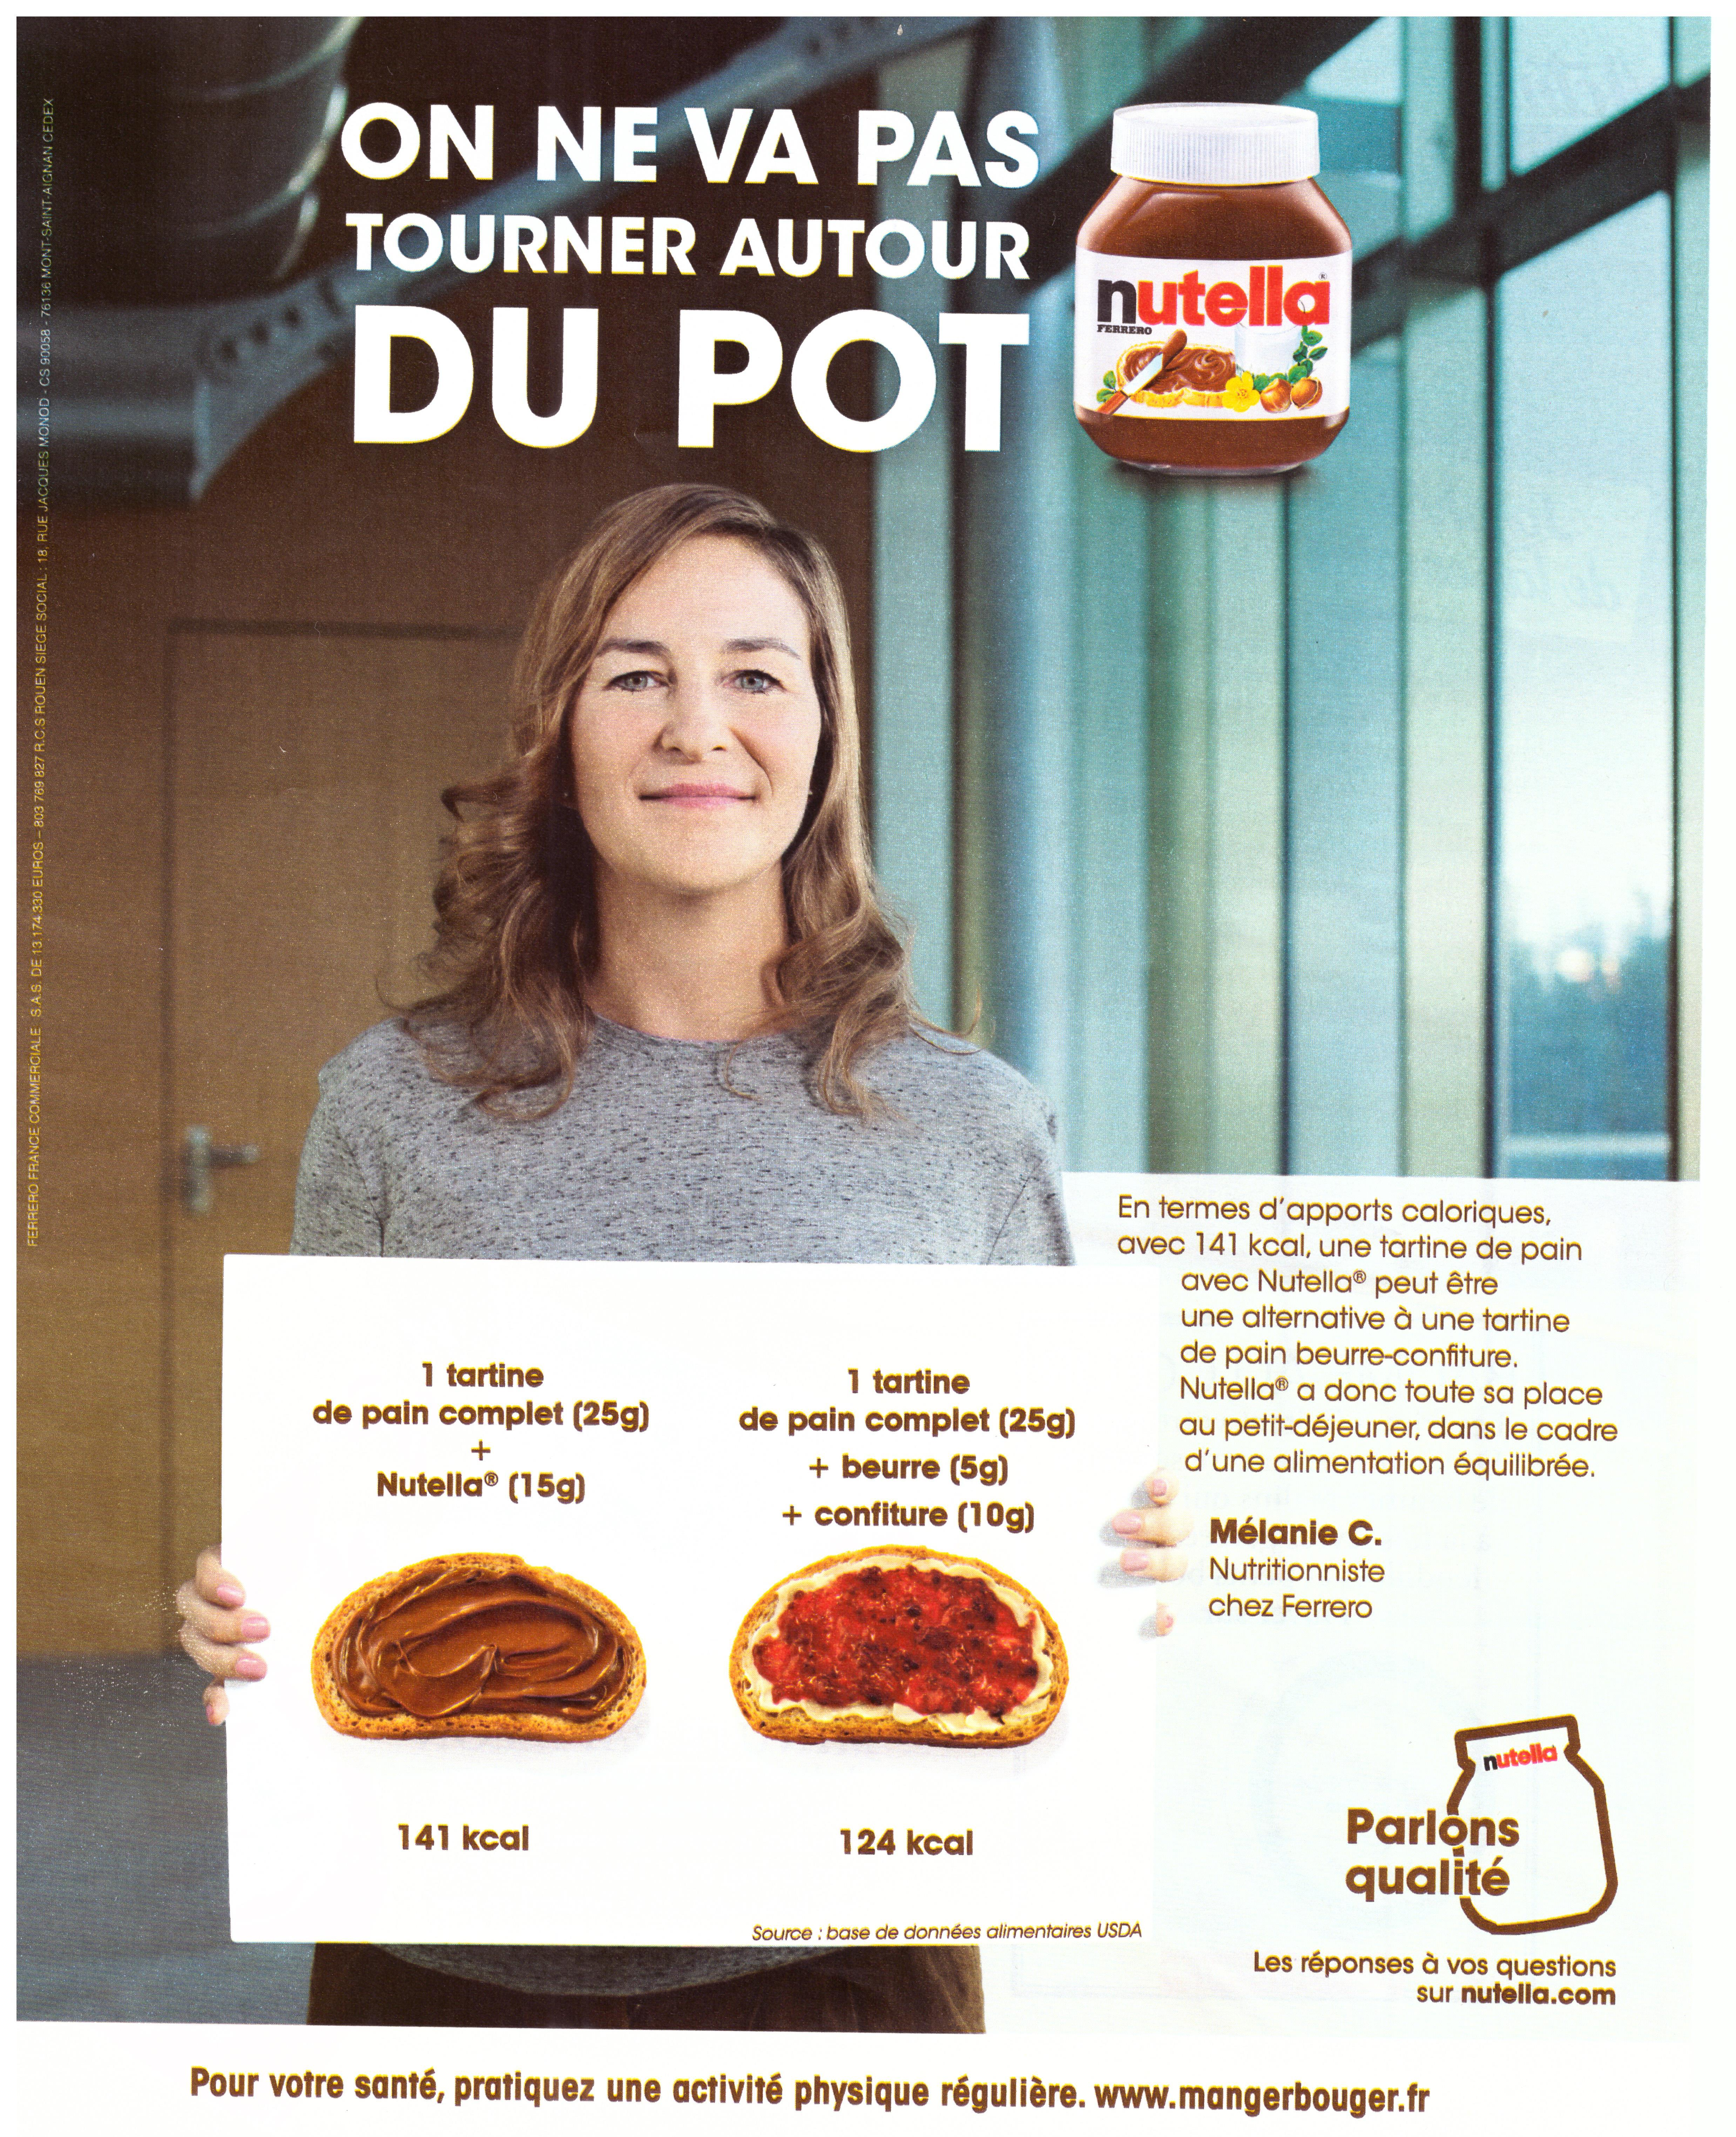 HALL OF SHAME: MISLEADING NUTELLA ADVERTISING   THE VIBRANT